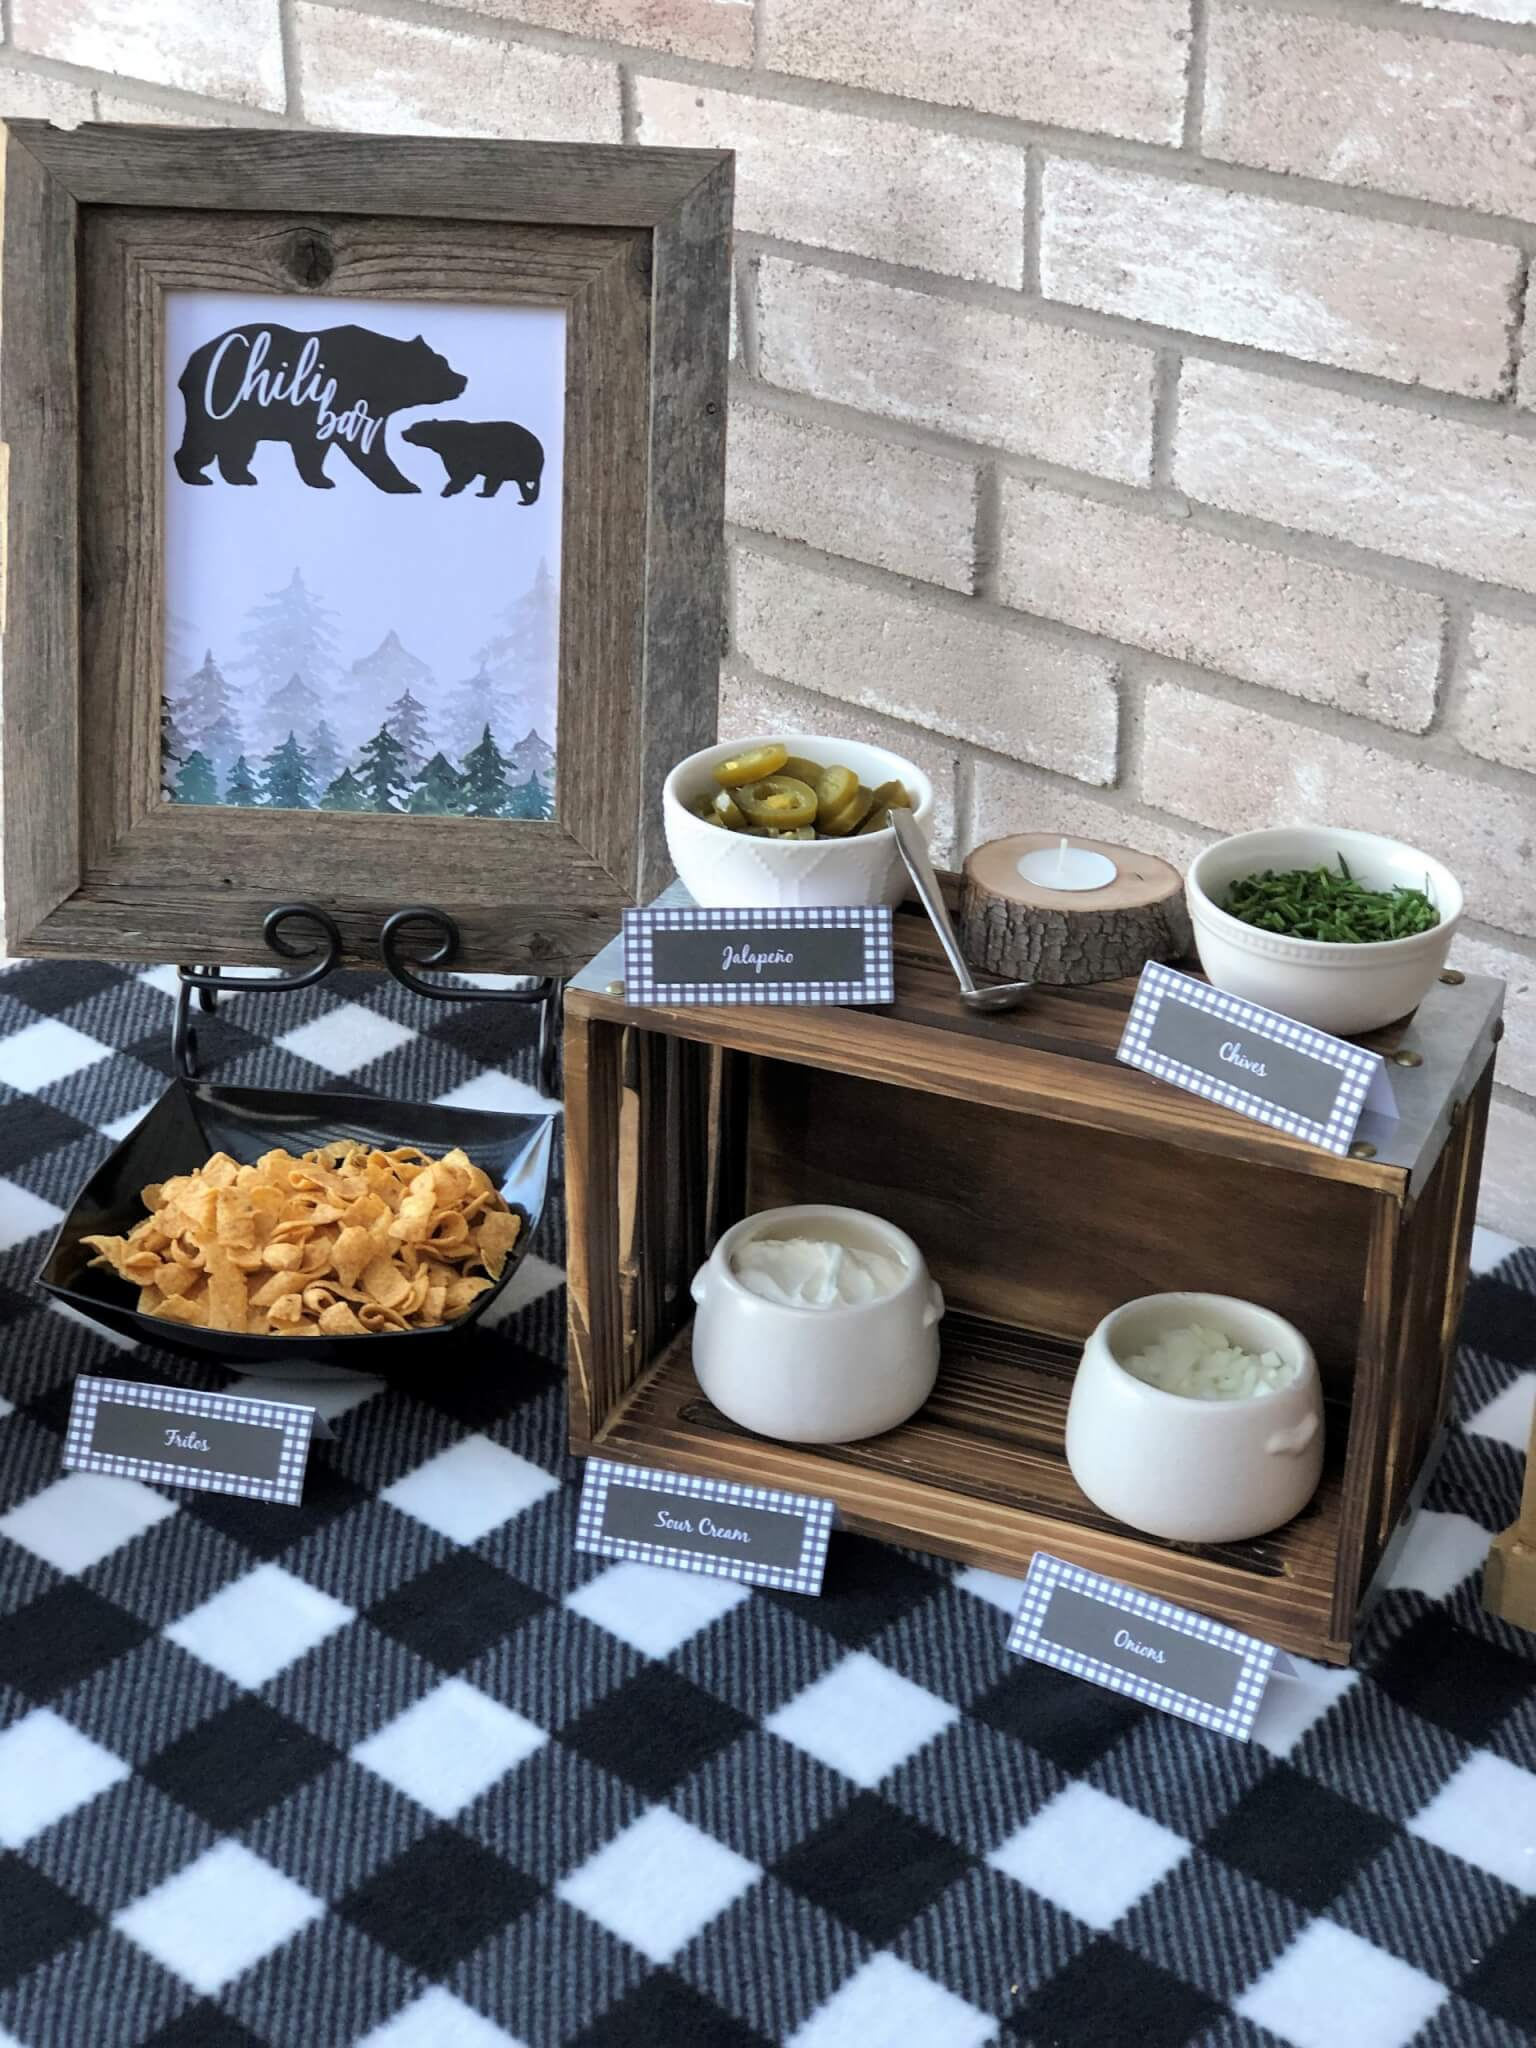 Creating a chili bar is a fun and easy way to host a gathering for any occasion. These ideas for toppings, decorations, sides, and more will help you to throw an epic chili party your guests will love. Free printables with multiple themes included!